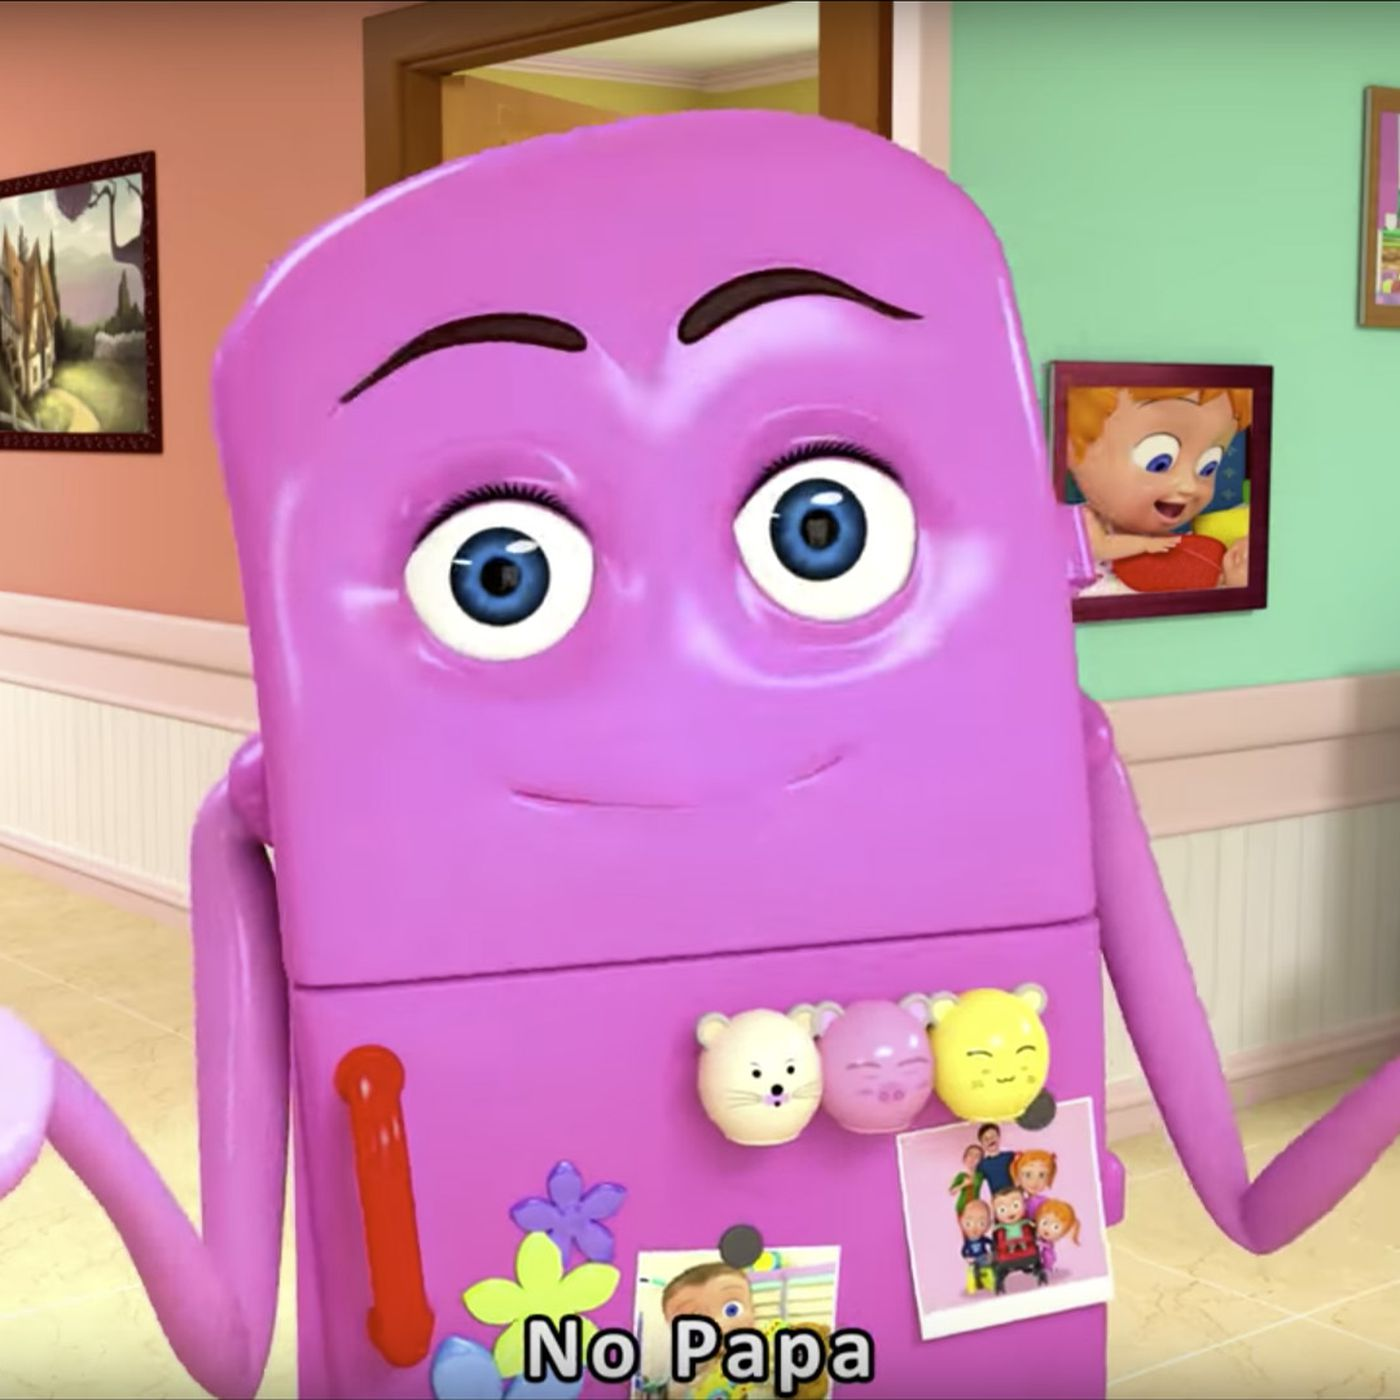 The Viral Johny Johny Kids Videos Are A Godforsaken Nightmare